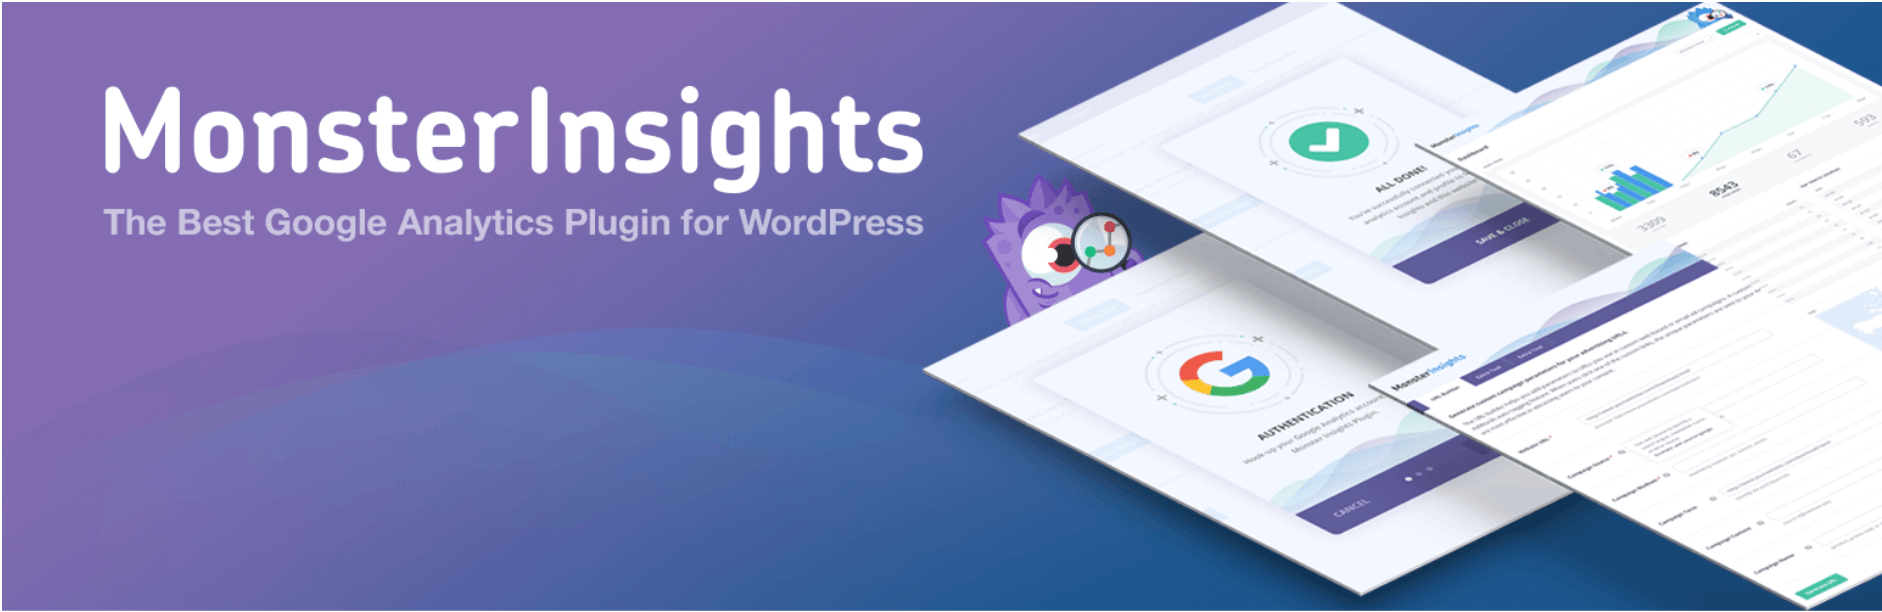 The Google Analytics plugin by Monster Insights.